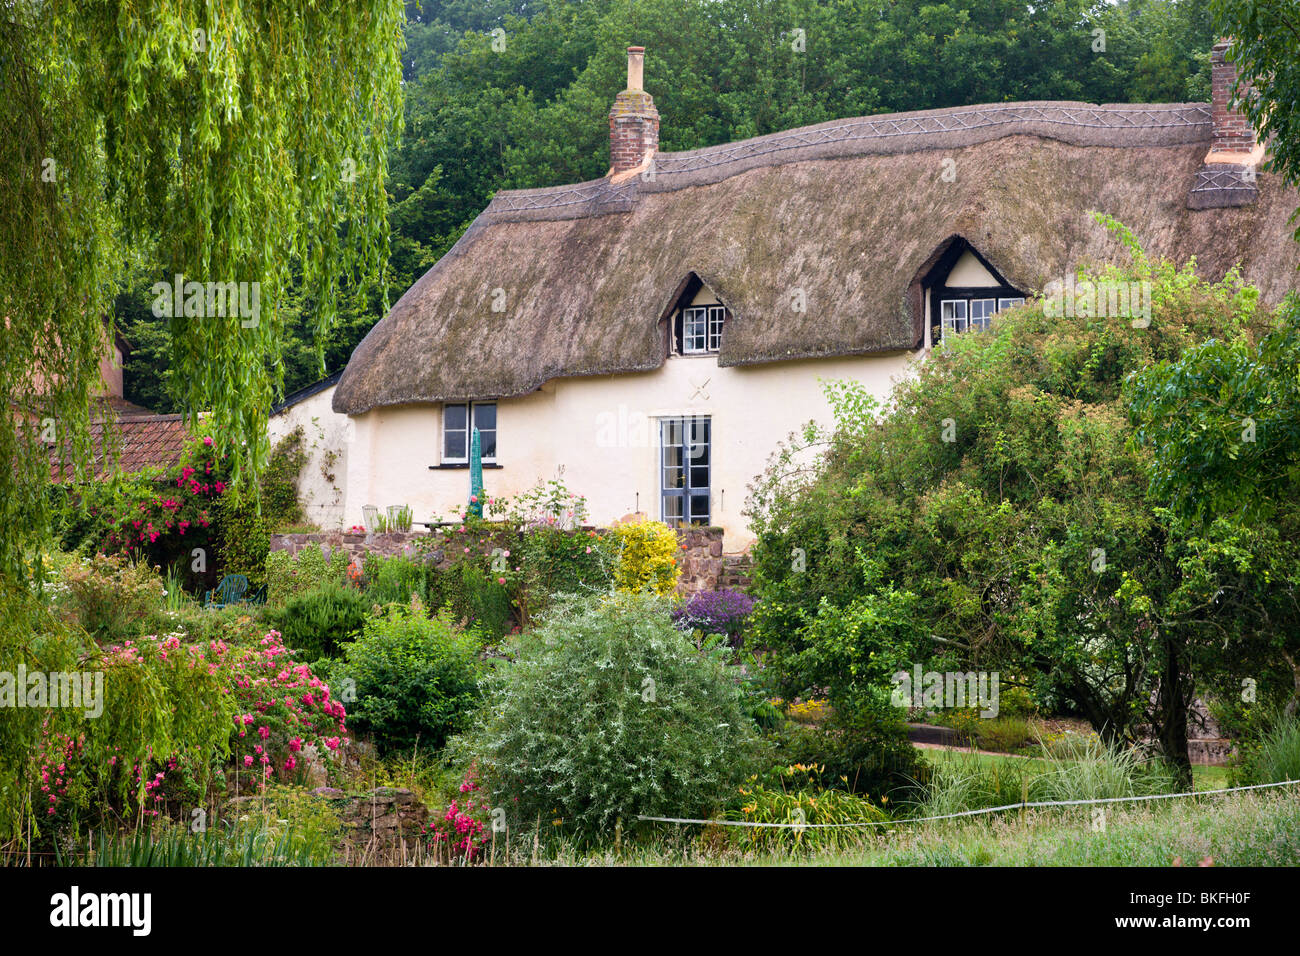 Pretty thatched cottage near Crediton, Devon, England. Summer (July) 2009 - Stock Image